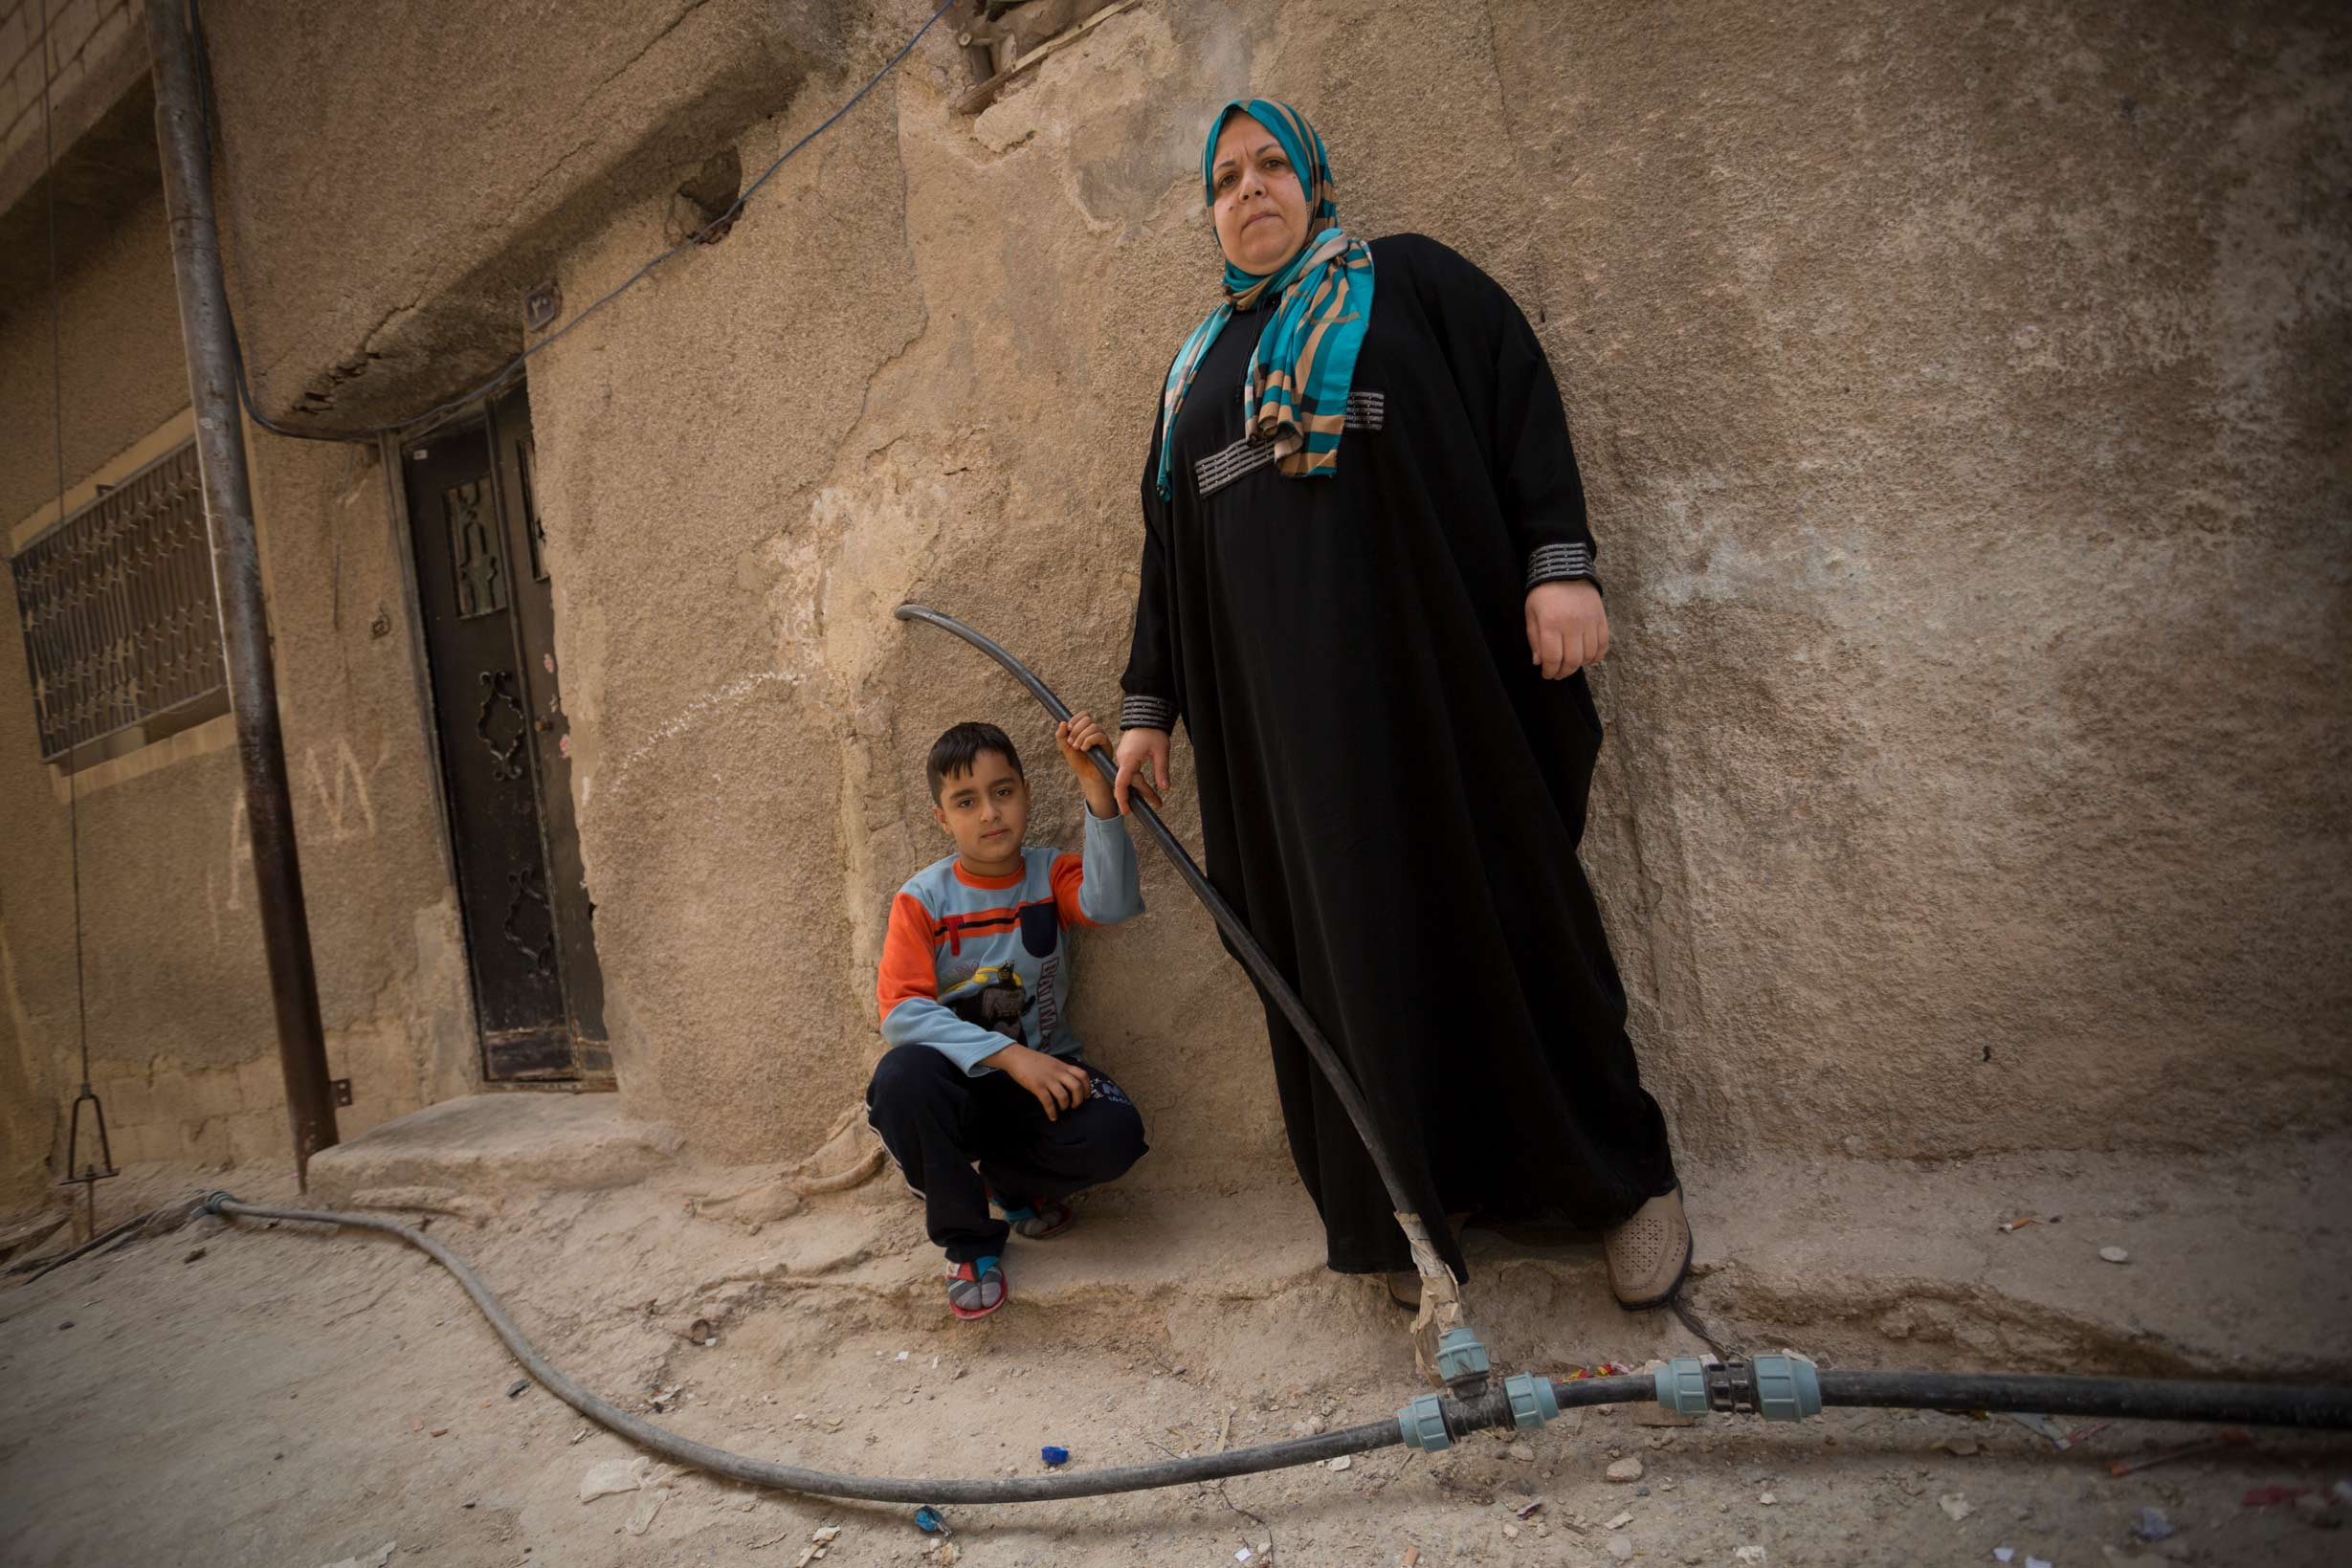 Mrs. Um Osama Omran and her son Sari stand among exposed municipal water pipes outside their home in Zarqa, Jordan in 2013. As part of a $275 million compact with Jordan, which closed in 2017, MCC has rehabilitated Zarqa's antiquated drinking and wastewater network and helped to expand a new wastewater treatment facility, all of which increased available water for drinking and irrigation and improved the safety and living conditions of the city's residents.